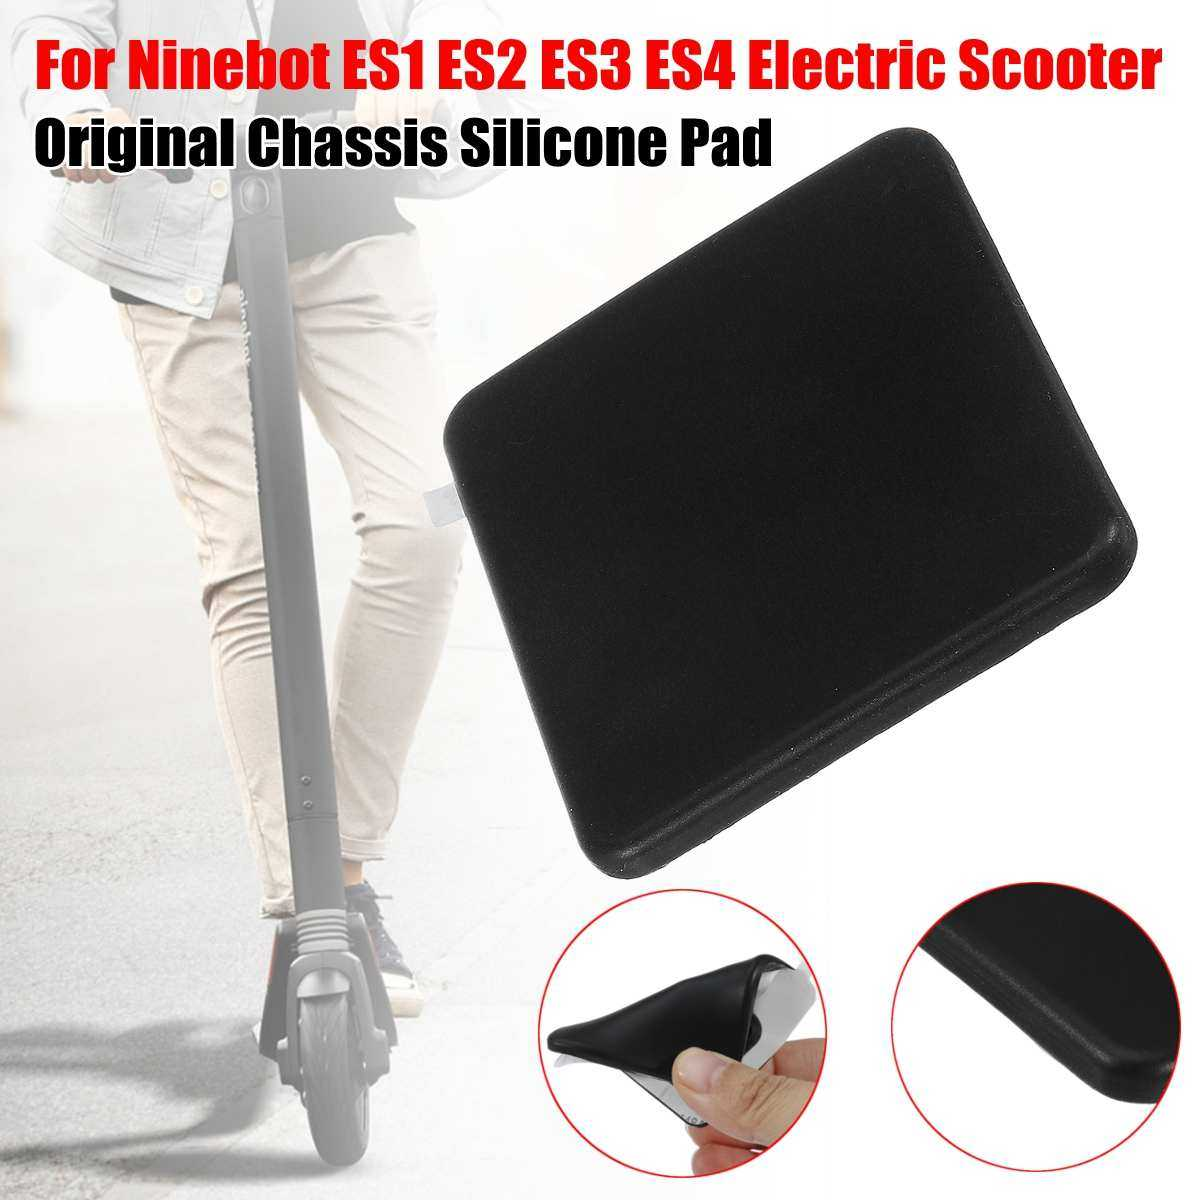 Chassis Silicone Pad Replacement for Ninebot ES1ES2 ES3 ES4 Electric Scooter New